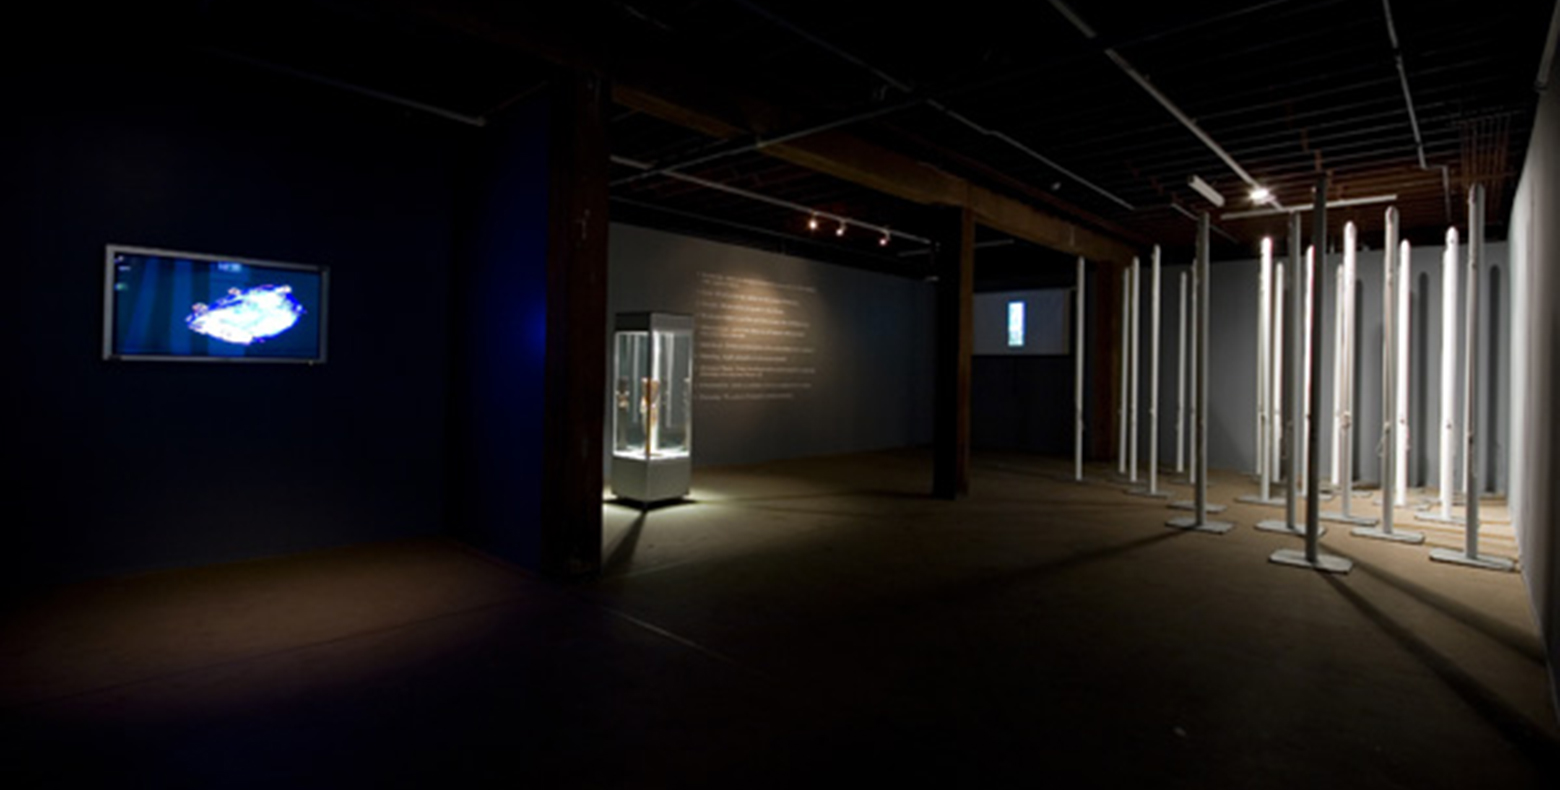 Michael Goldberg, 'Strong language Some violence Adult themes', installation view, Artspace, Sydney, 2008